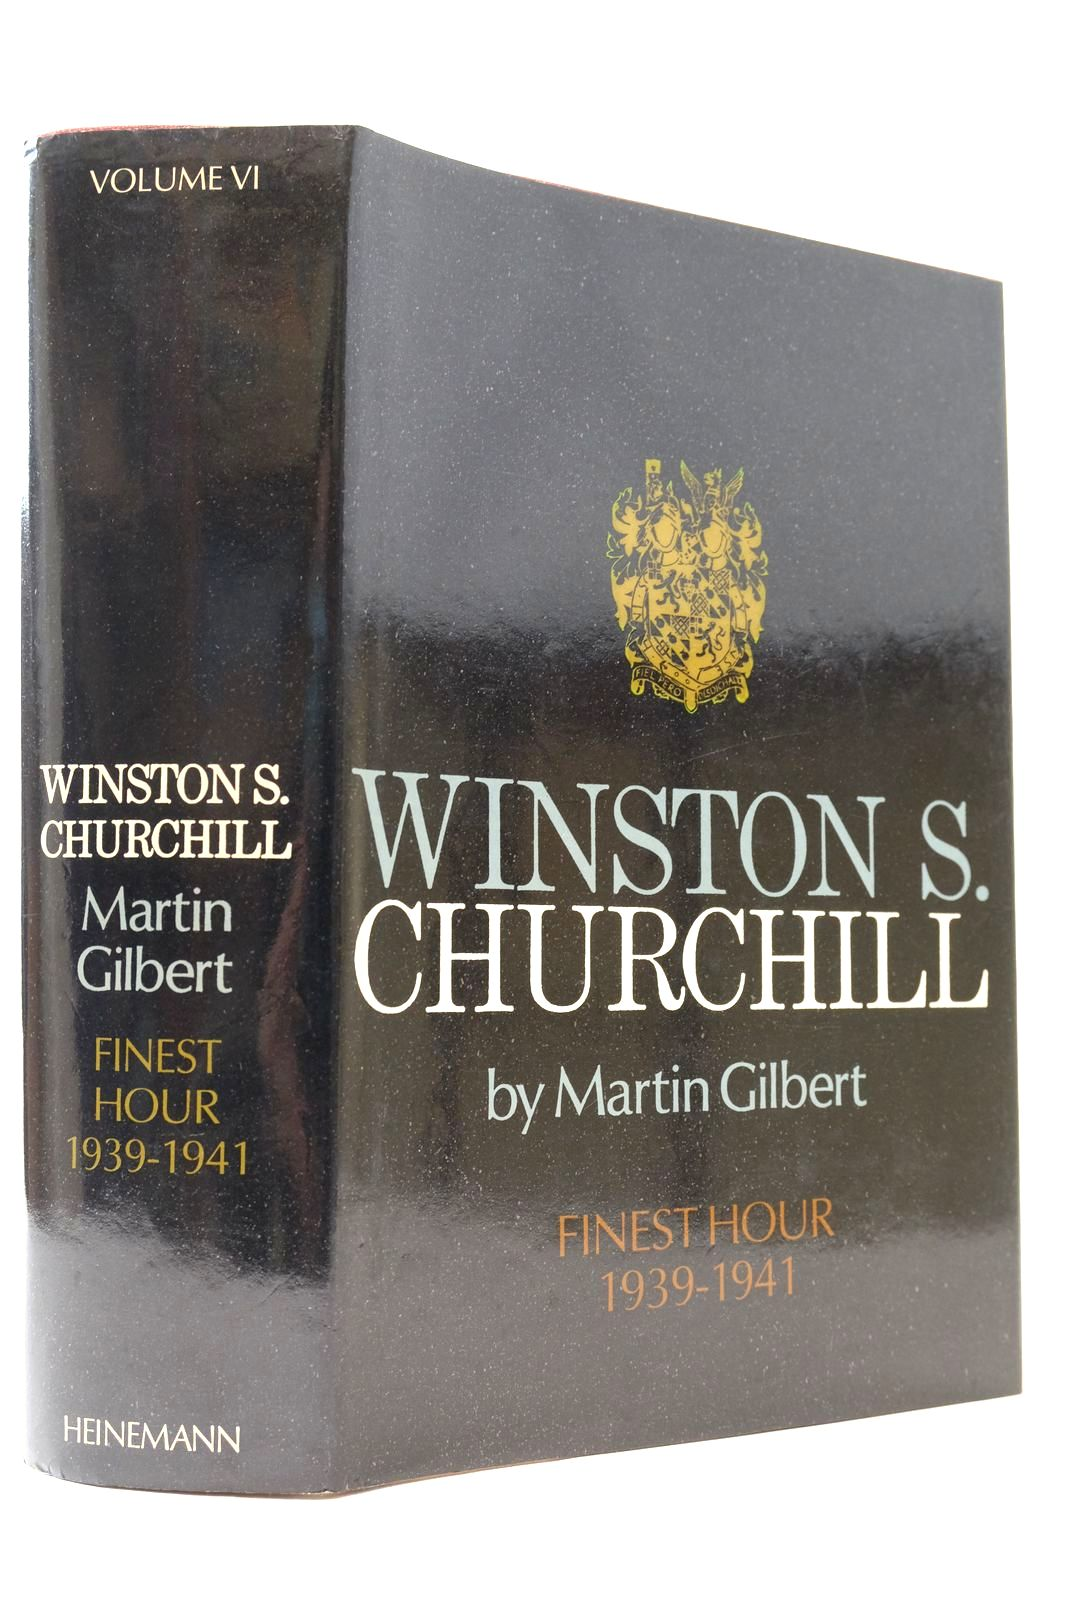 Photo of WINSTON S. CHURCHILL VOLUME VI FINEST HOUR 1939-1941- Stock Number: 2132688